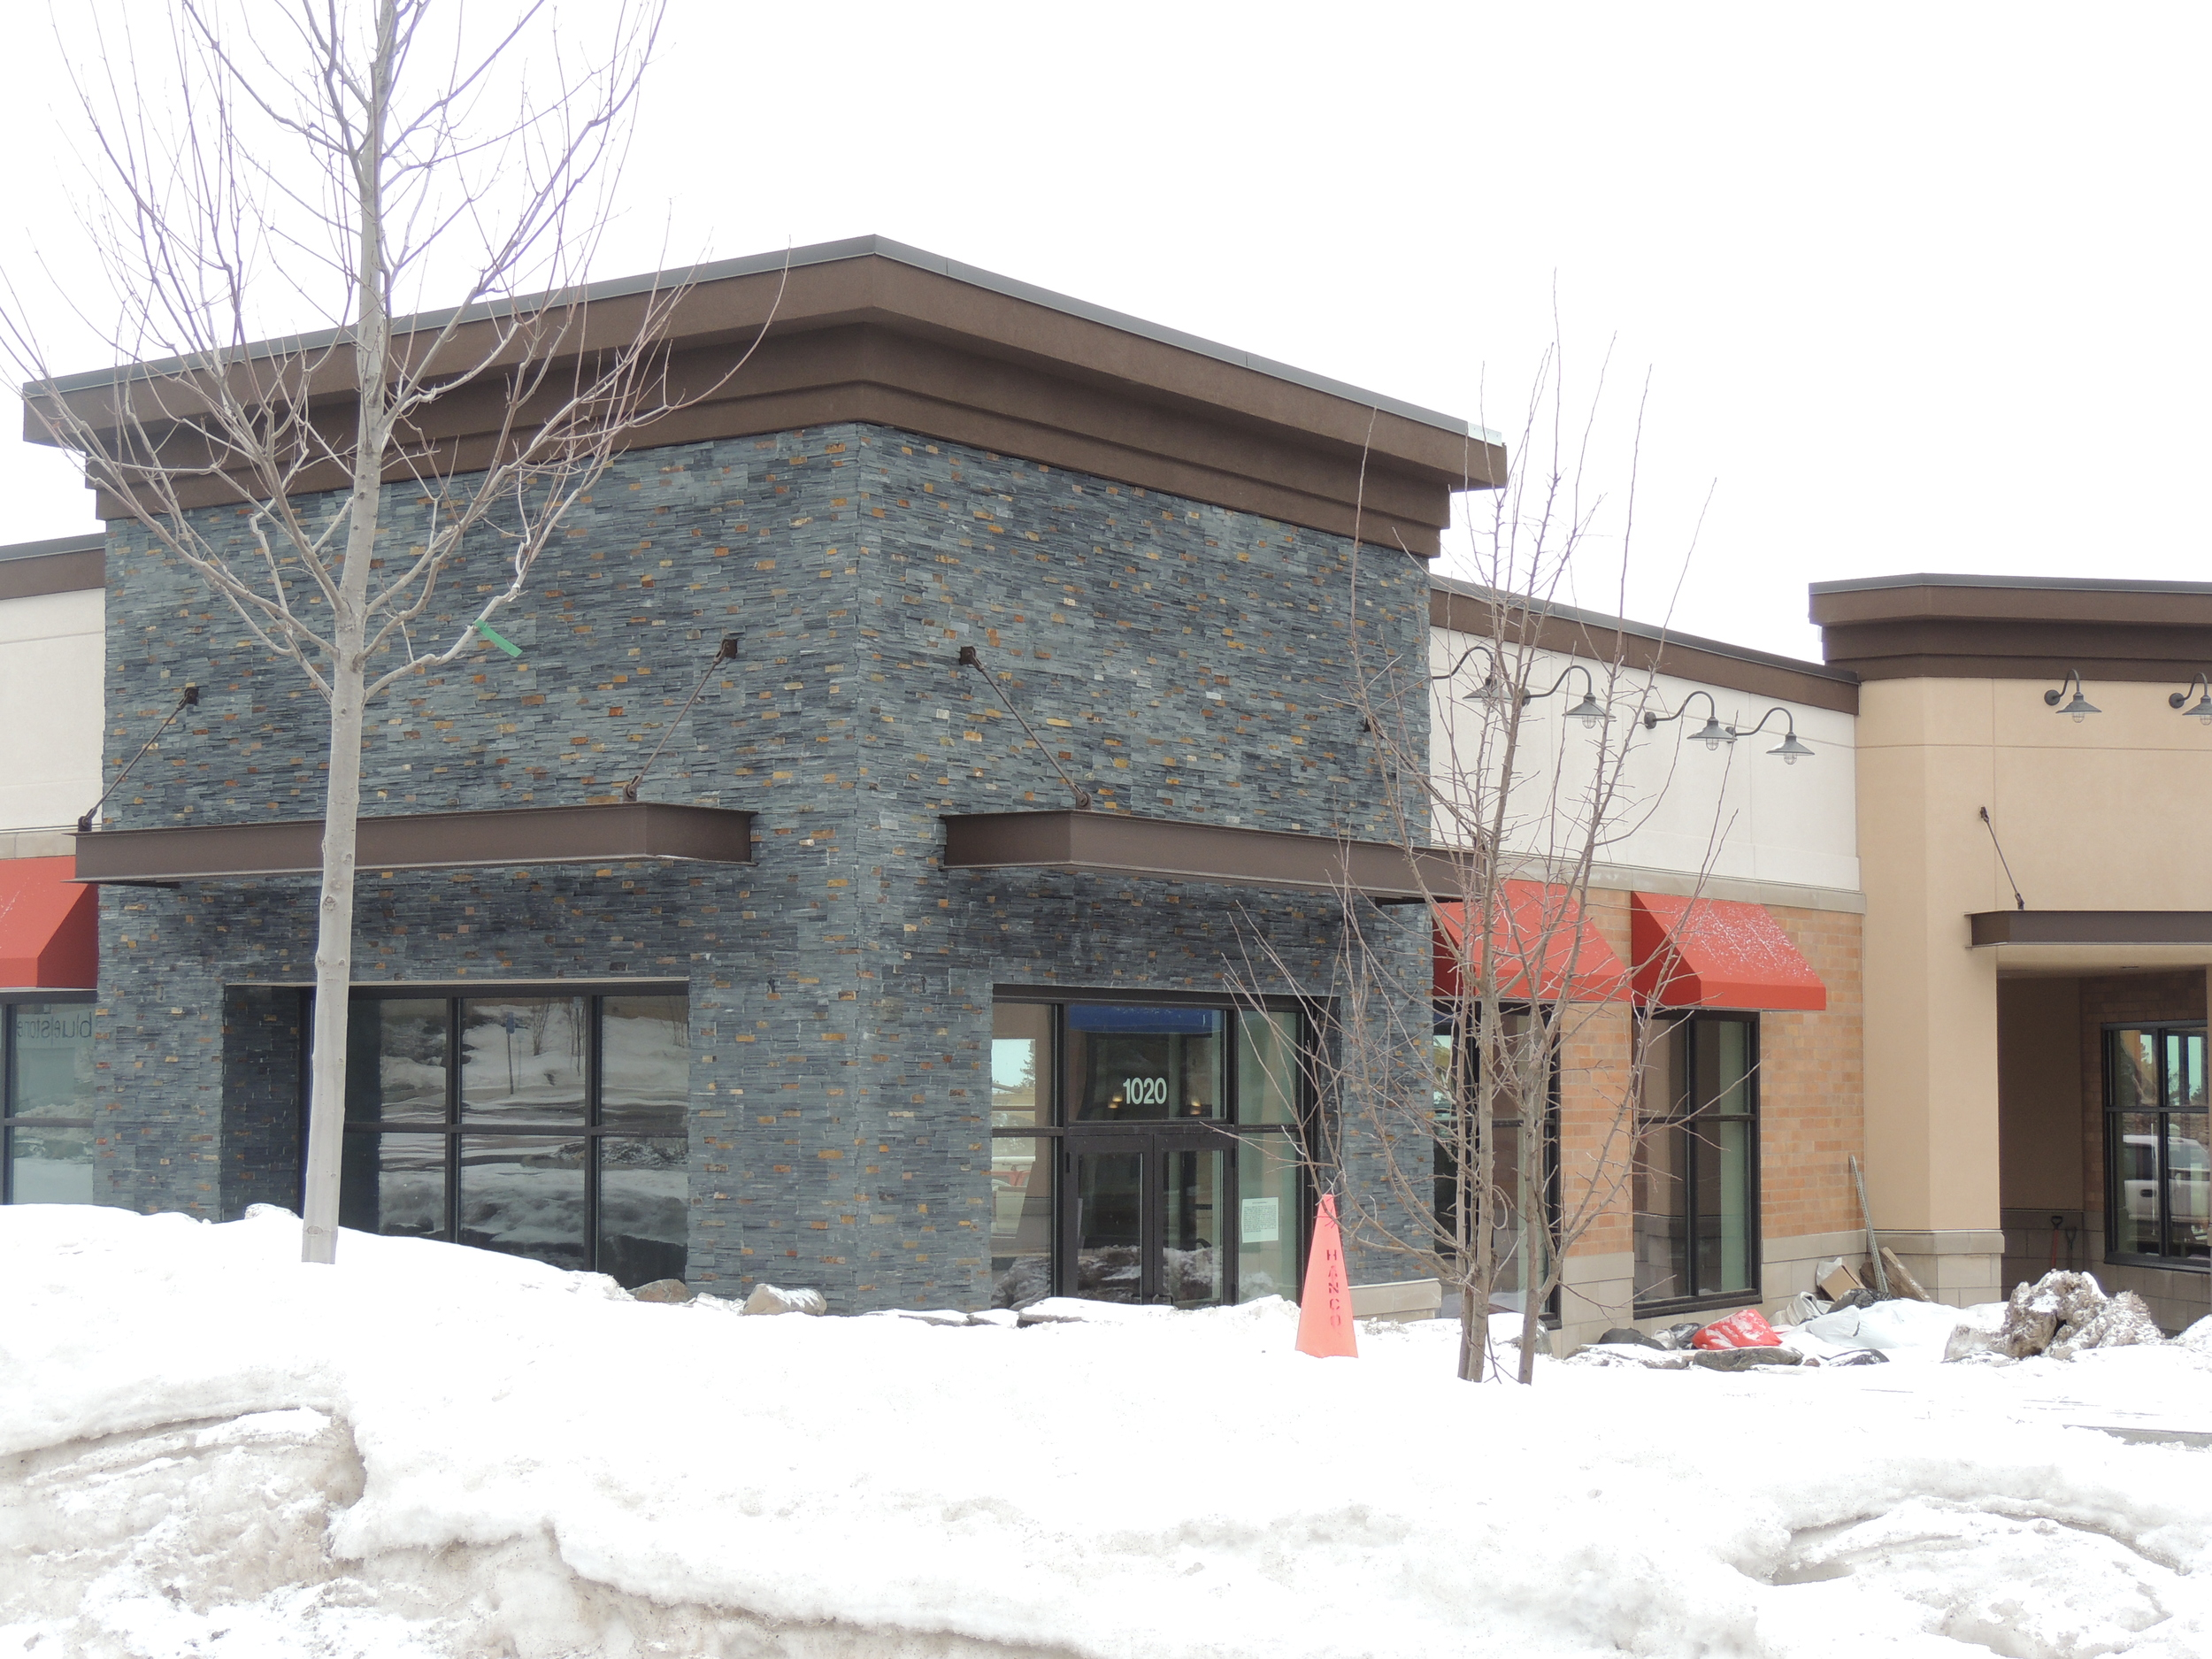 Qdoba's new location will also feature patio dining space.